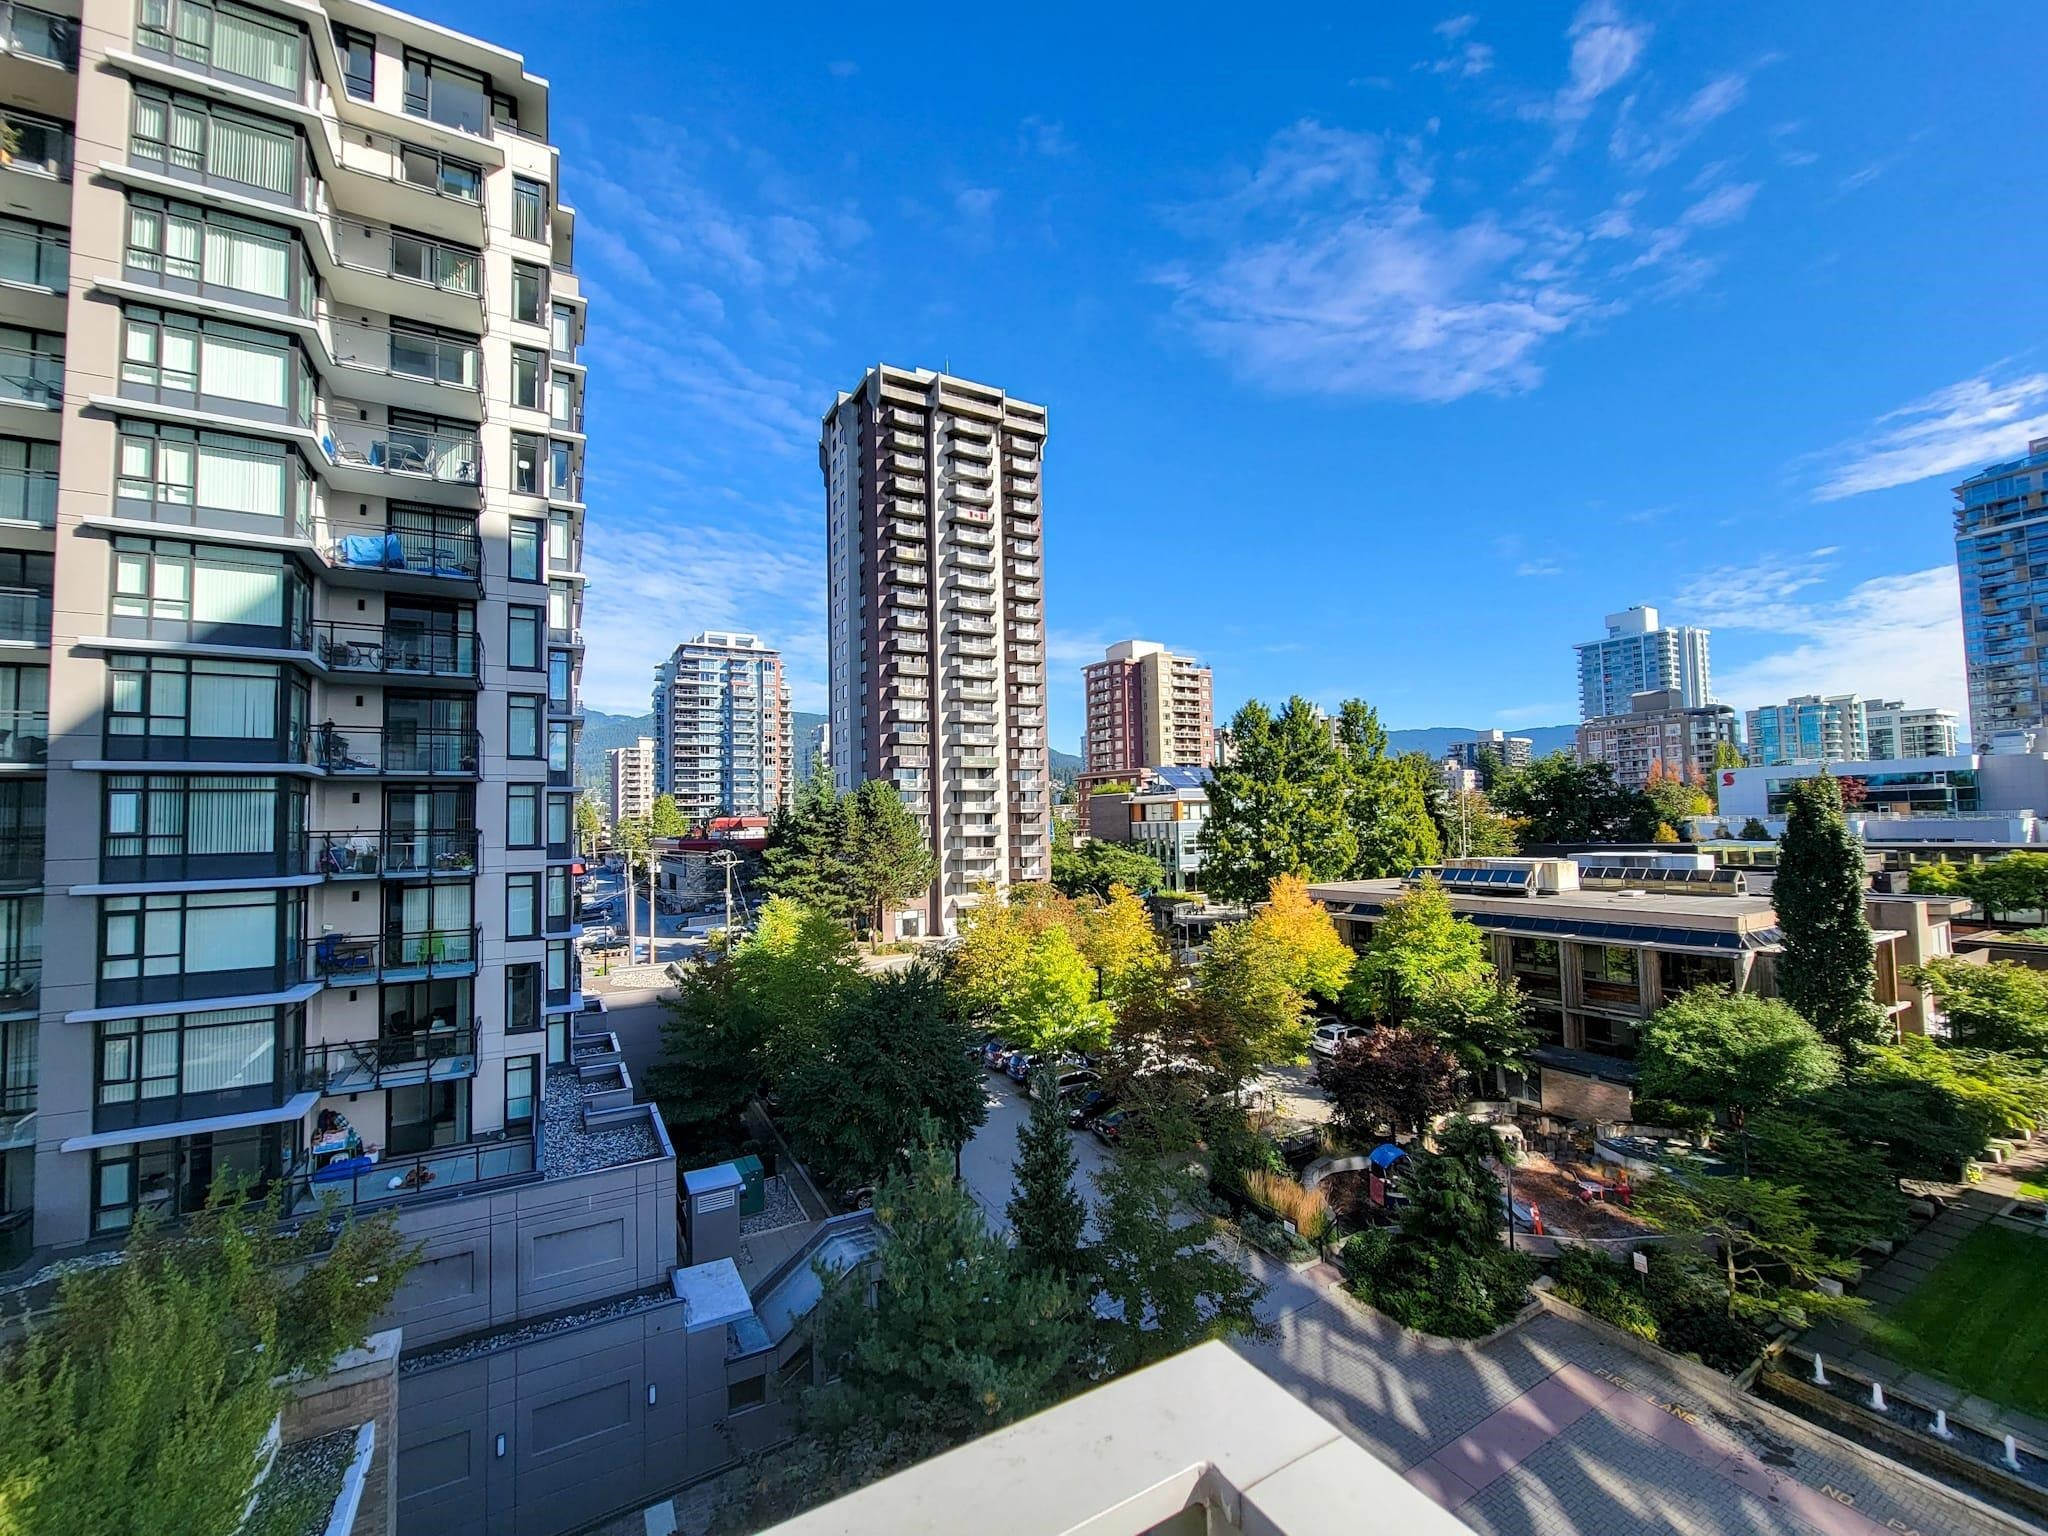 607 1320 CHESTERFIELD AVENUE - Central Lonsdale Apartment/Condo for sale, 2 Bedrooms (R2625778) - #1